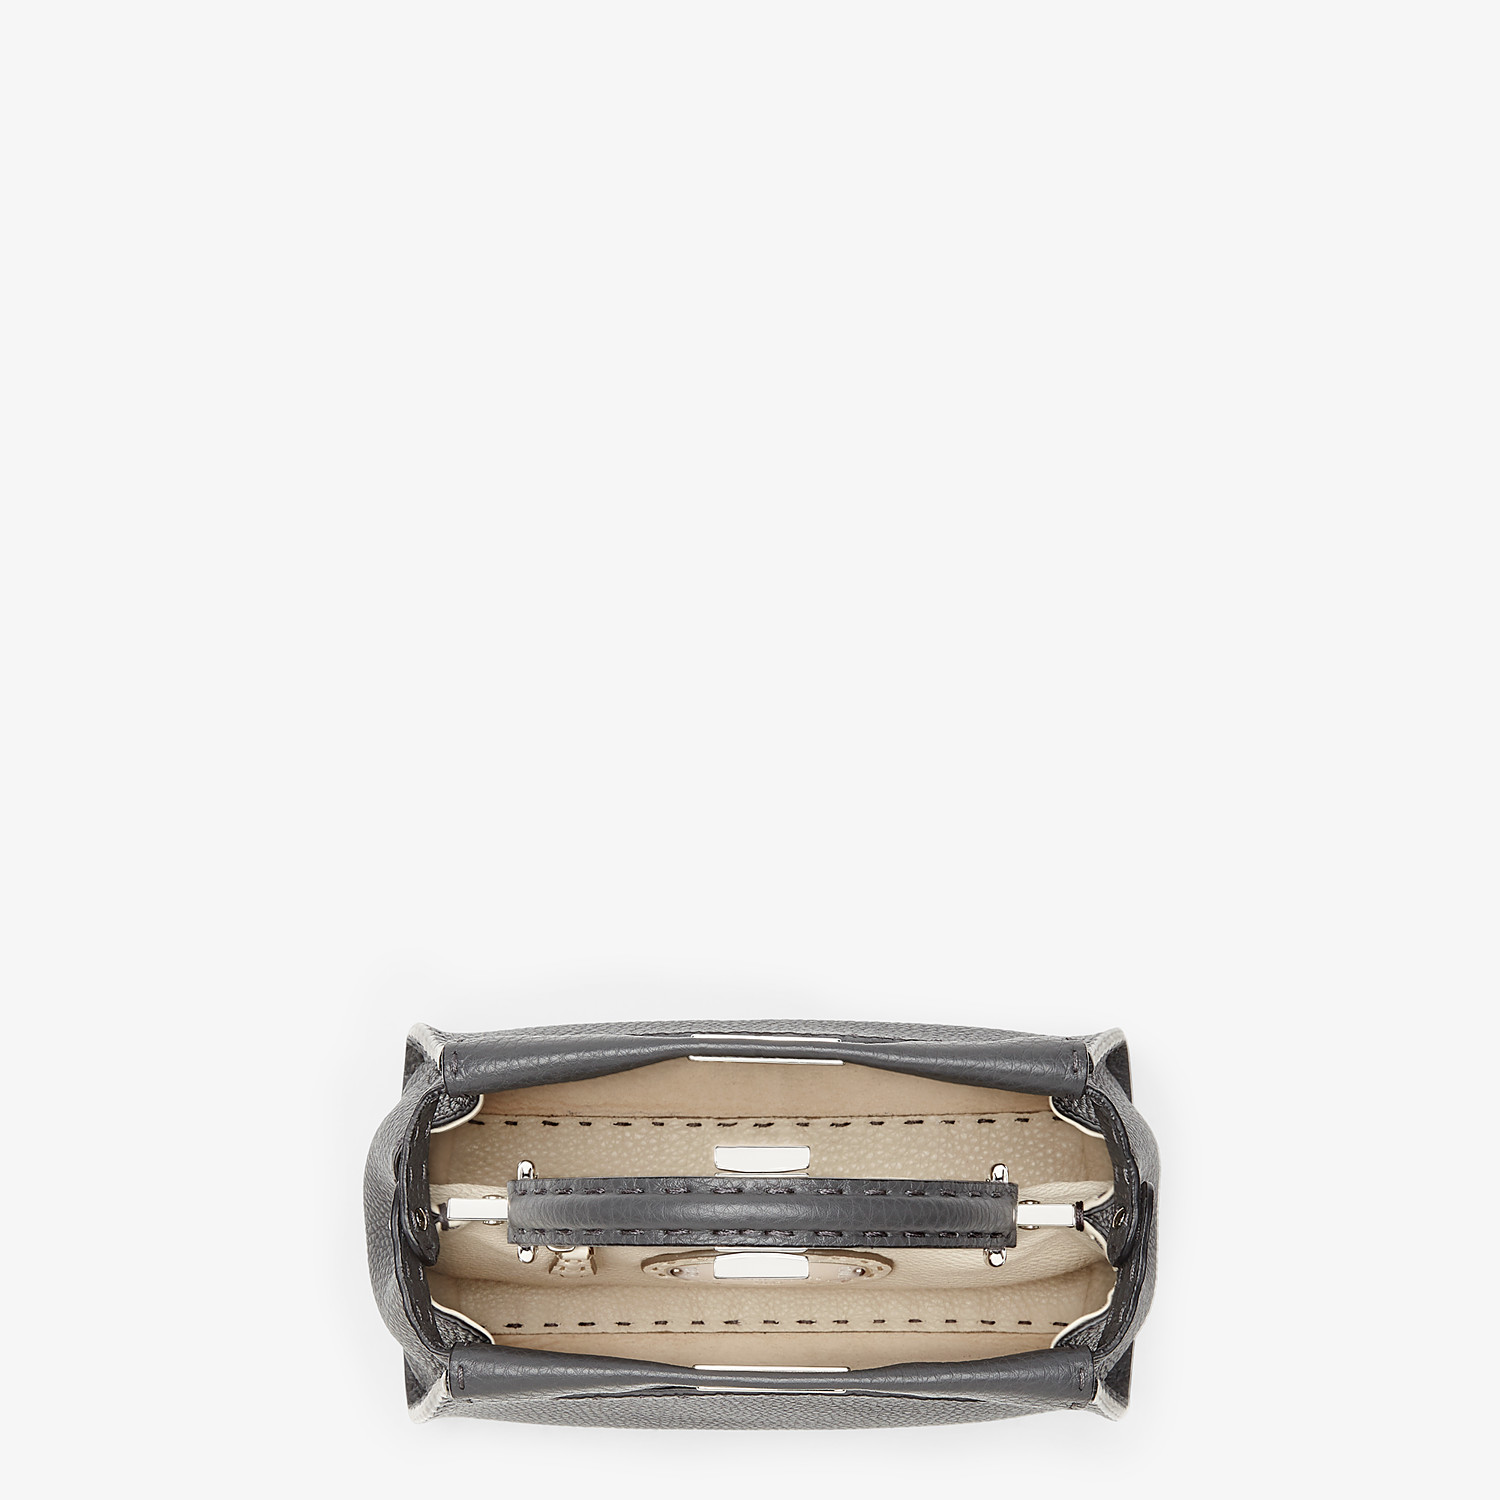 FENDI PEEKABOO ICONIC MINI - Asphalt-grey Selleria handbag - view 4 detail